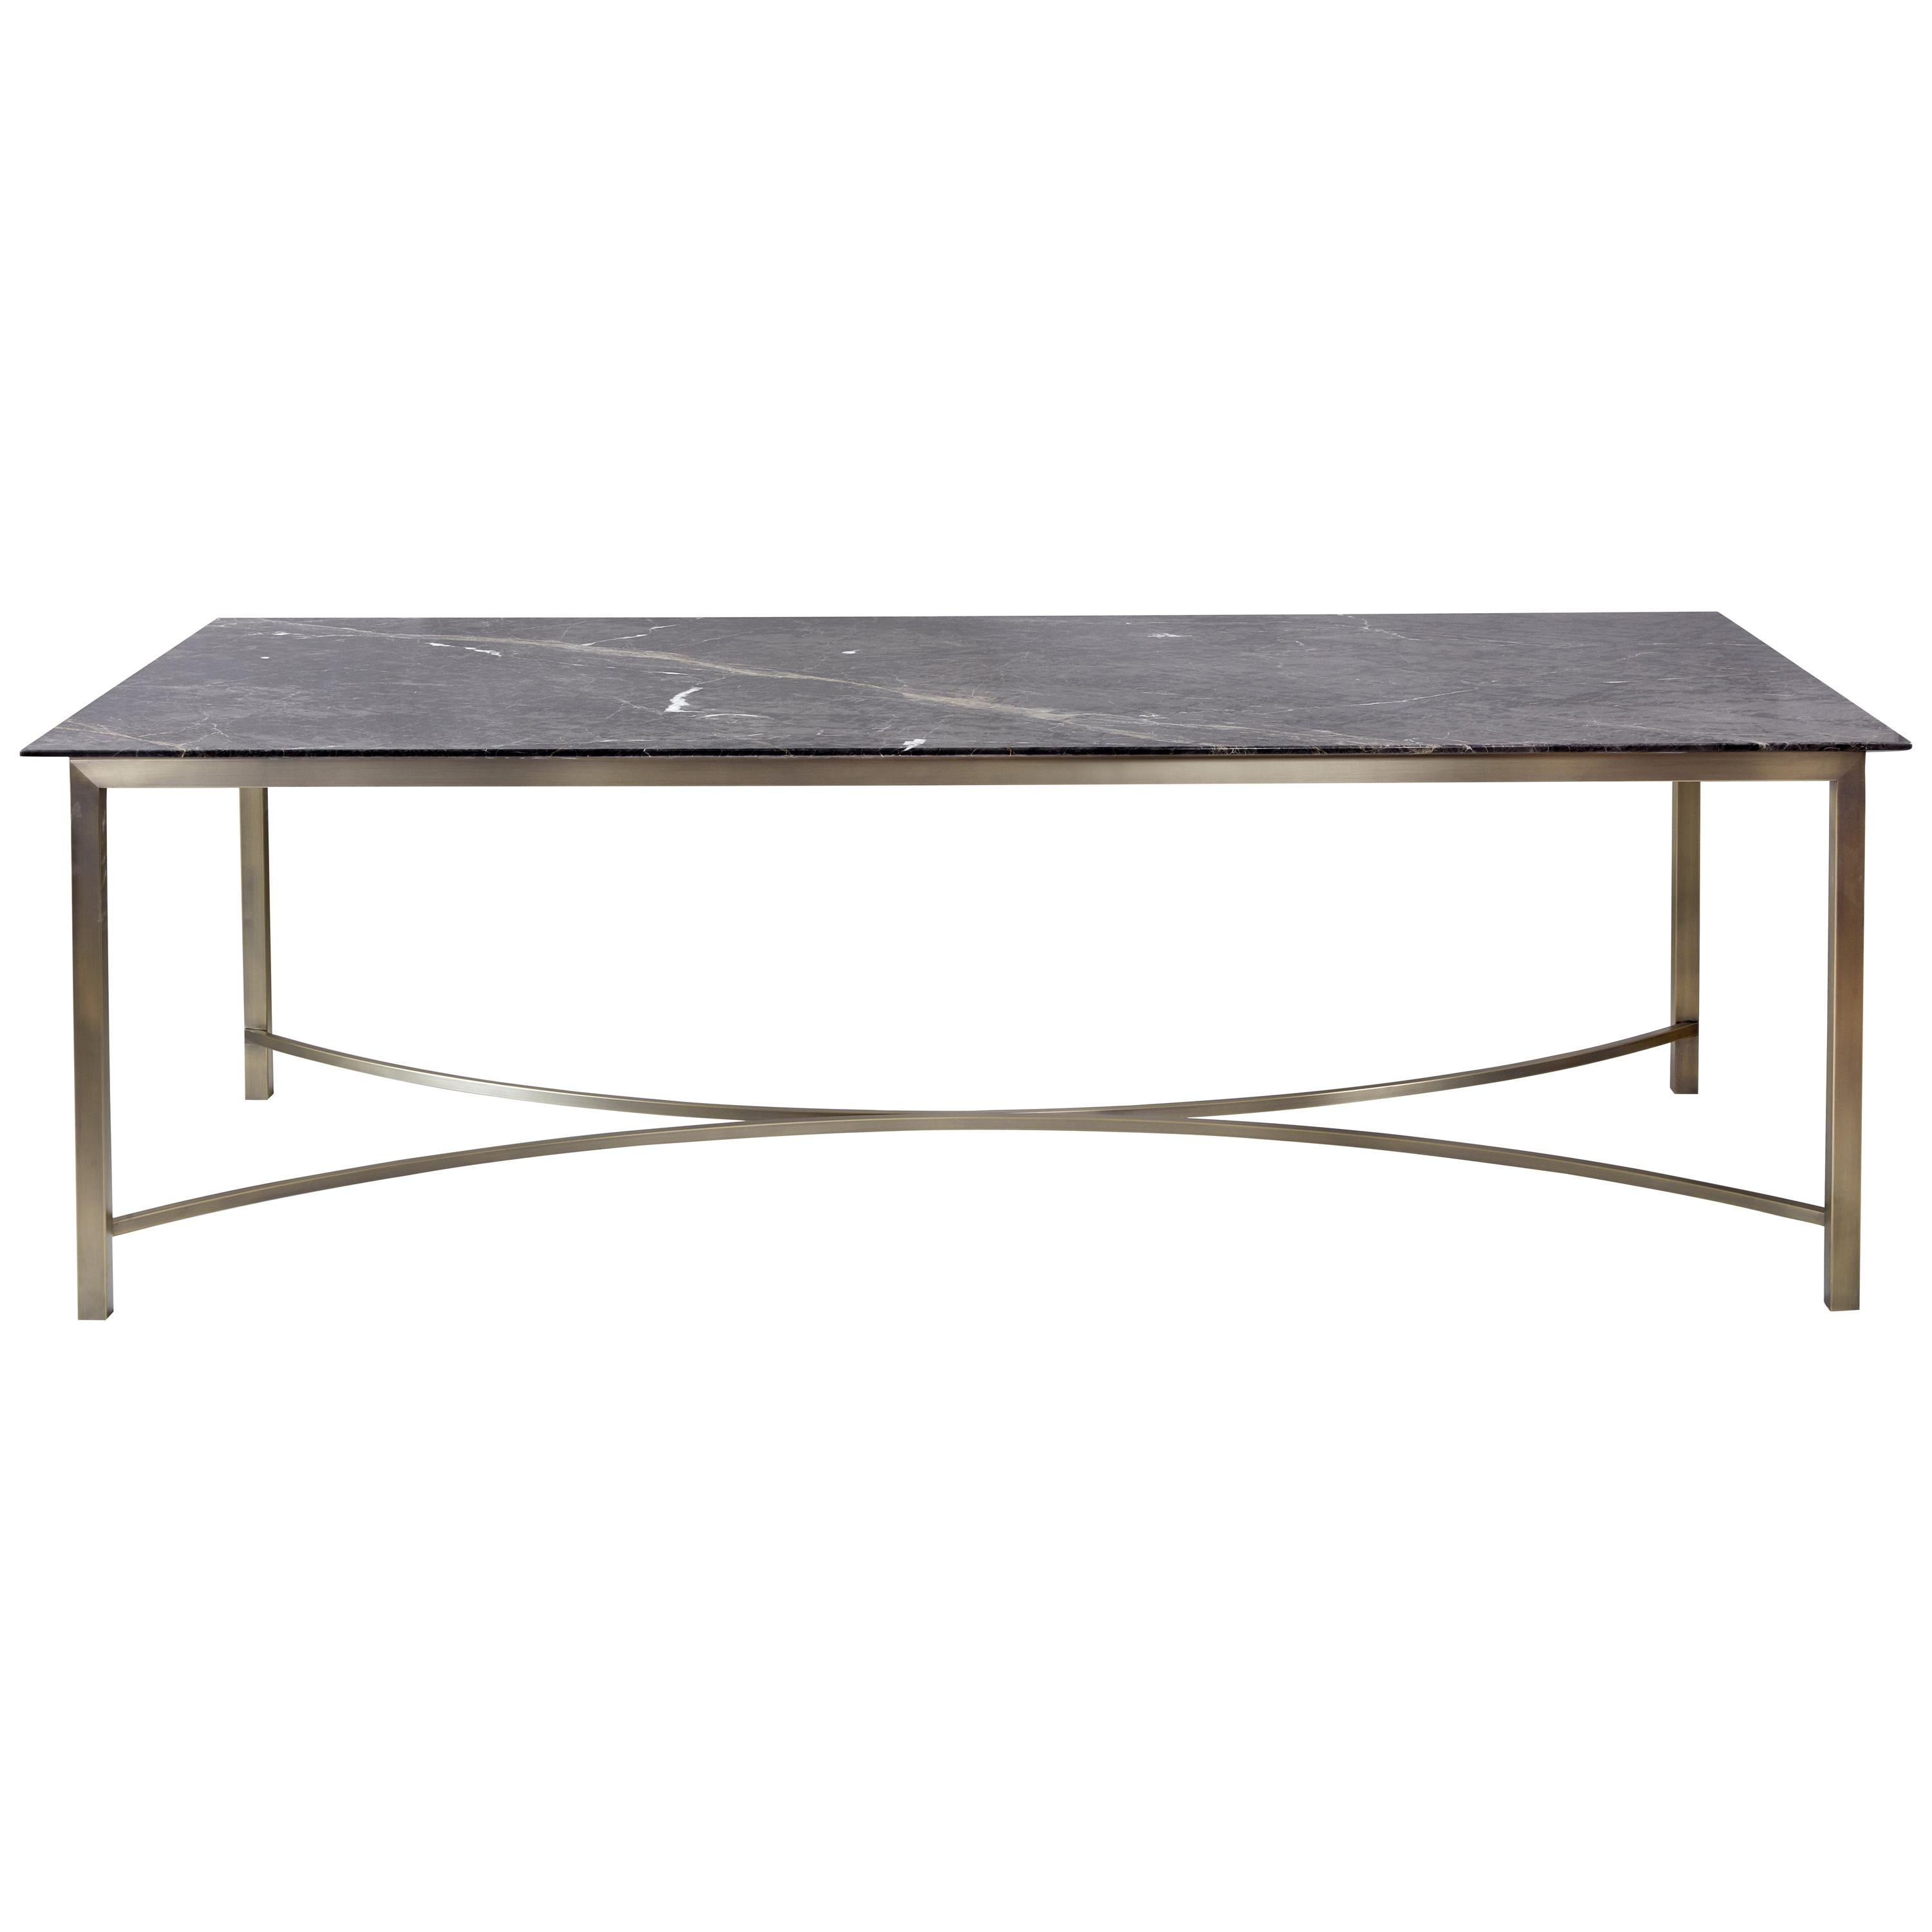 Myra Dining Table, Bronze Legs Supporting Marble Slab Dining Table